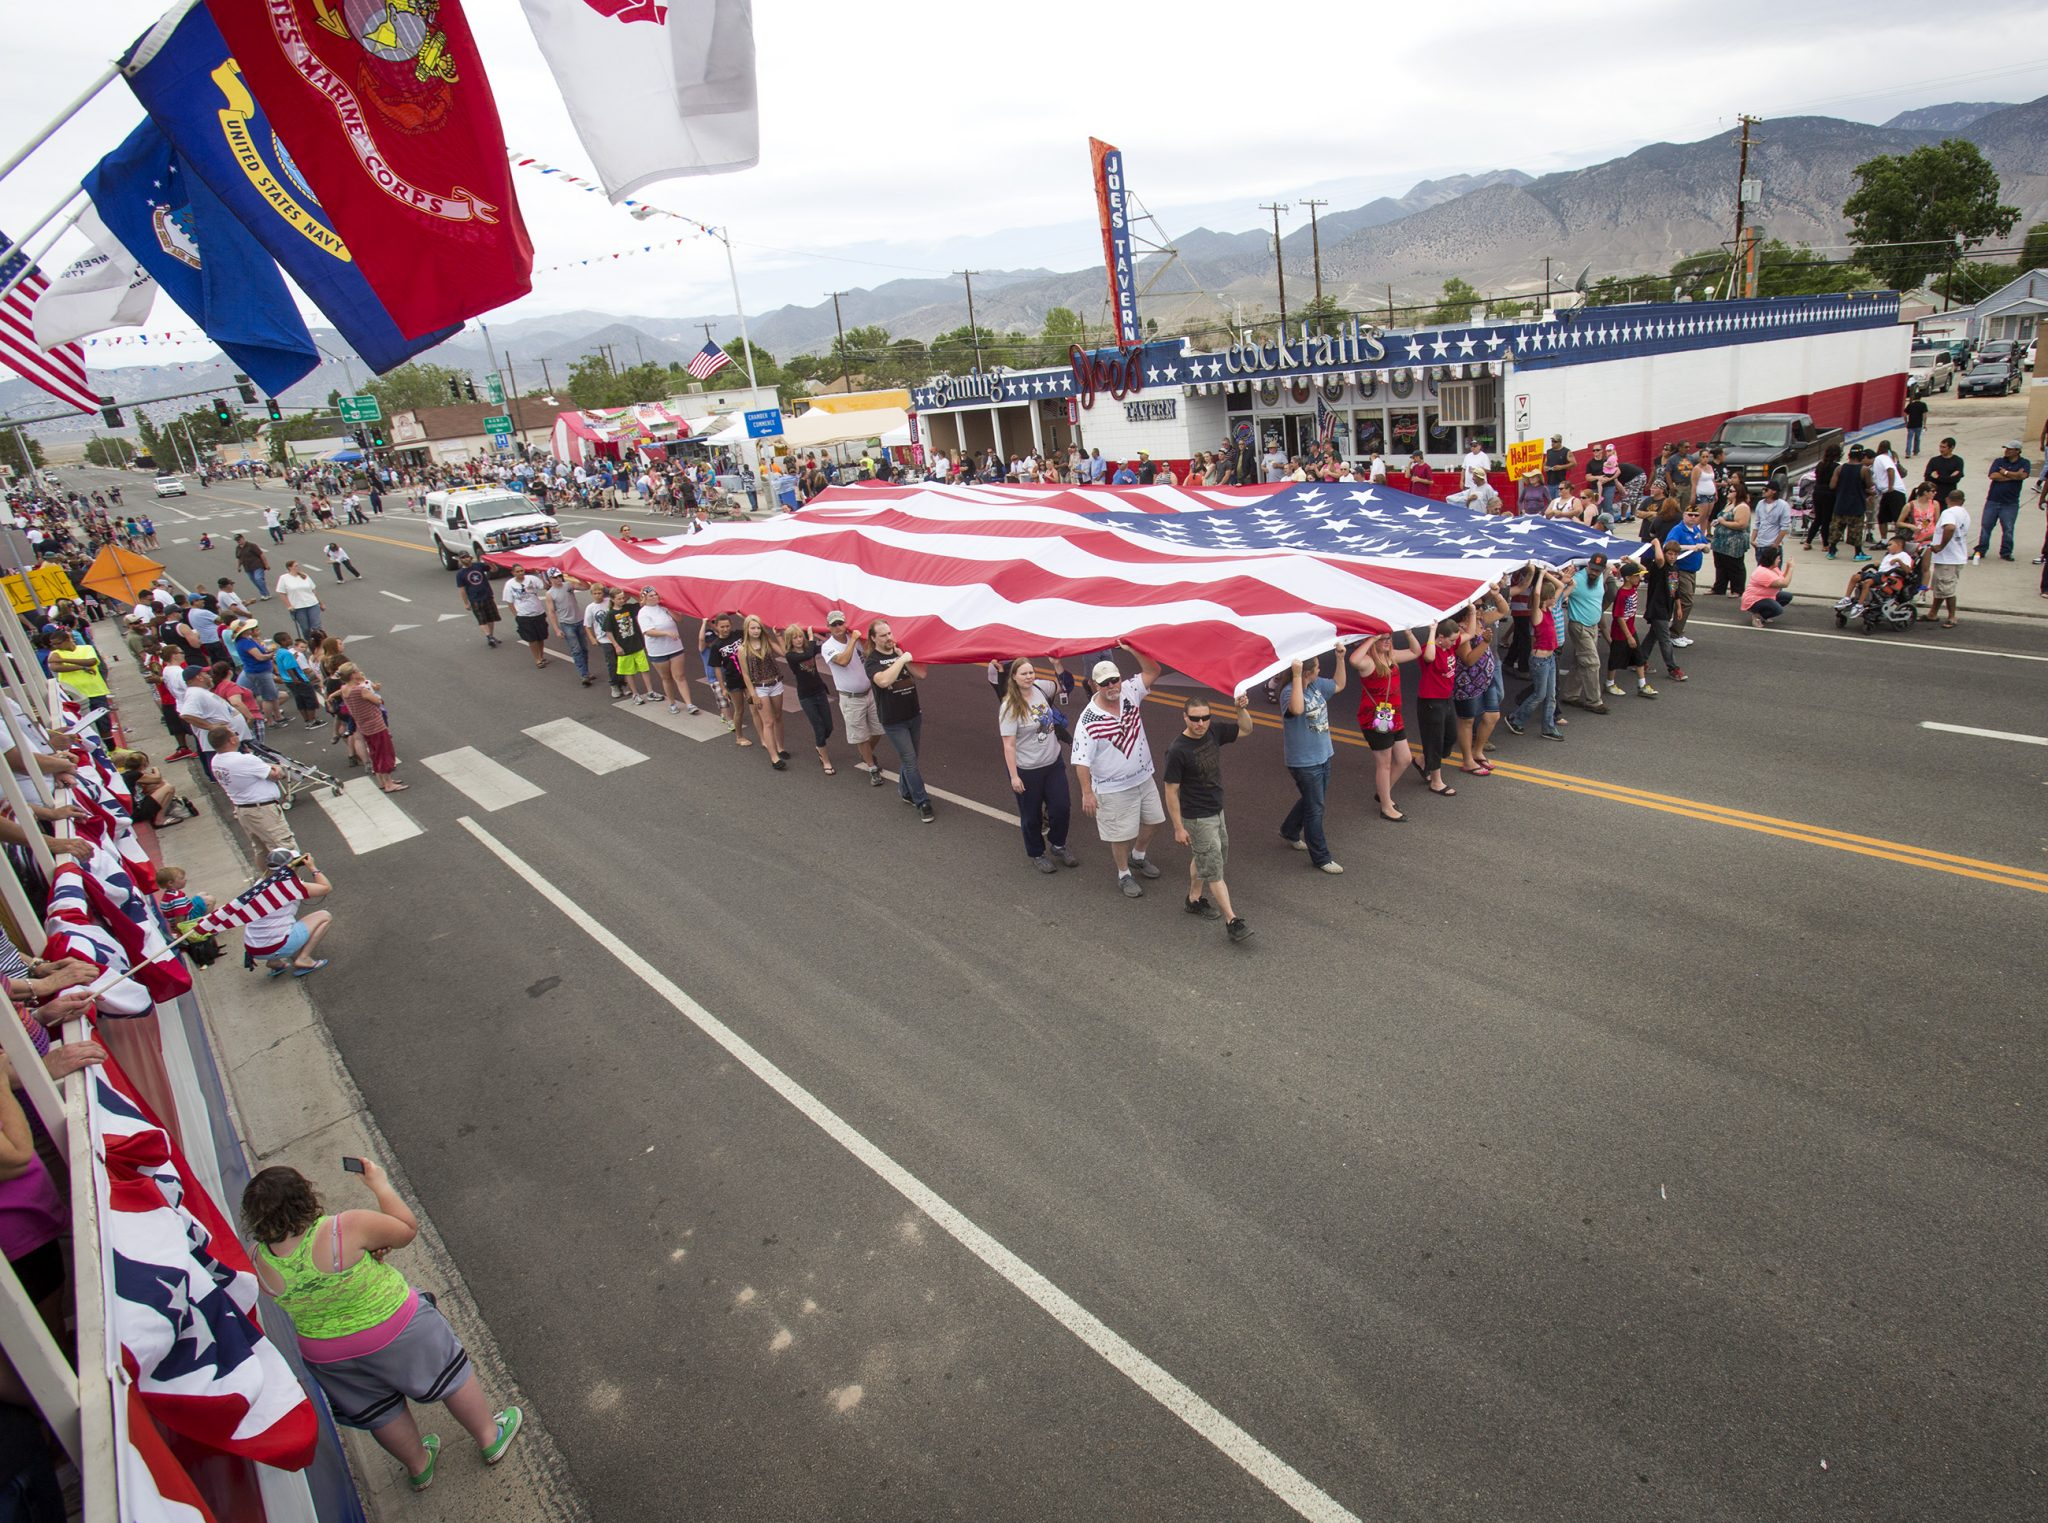 64th annual Armed Forces Day celebration a hit in Hawthorne